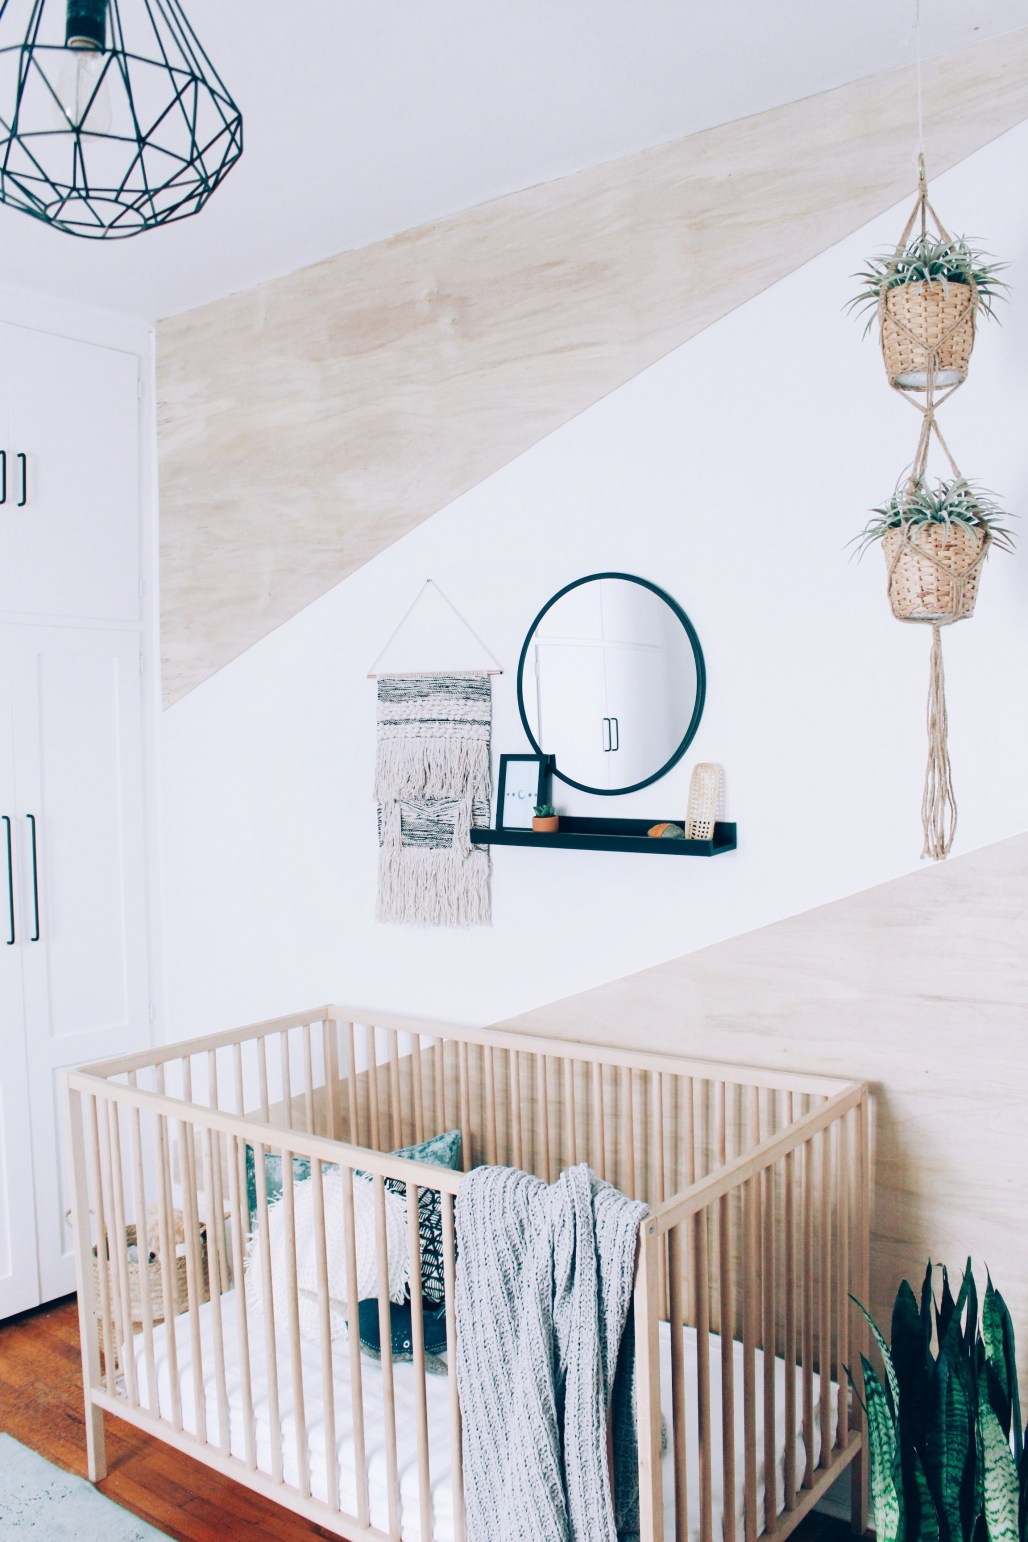 Boy's nursery with plywood geometric wall DIY and lots of greenery and plants